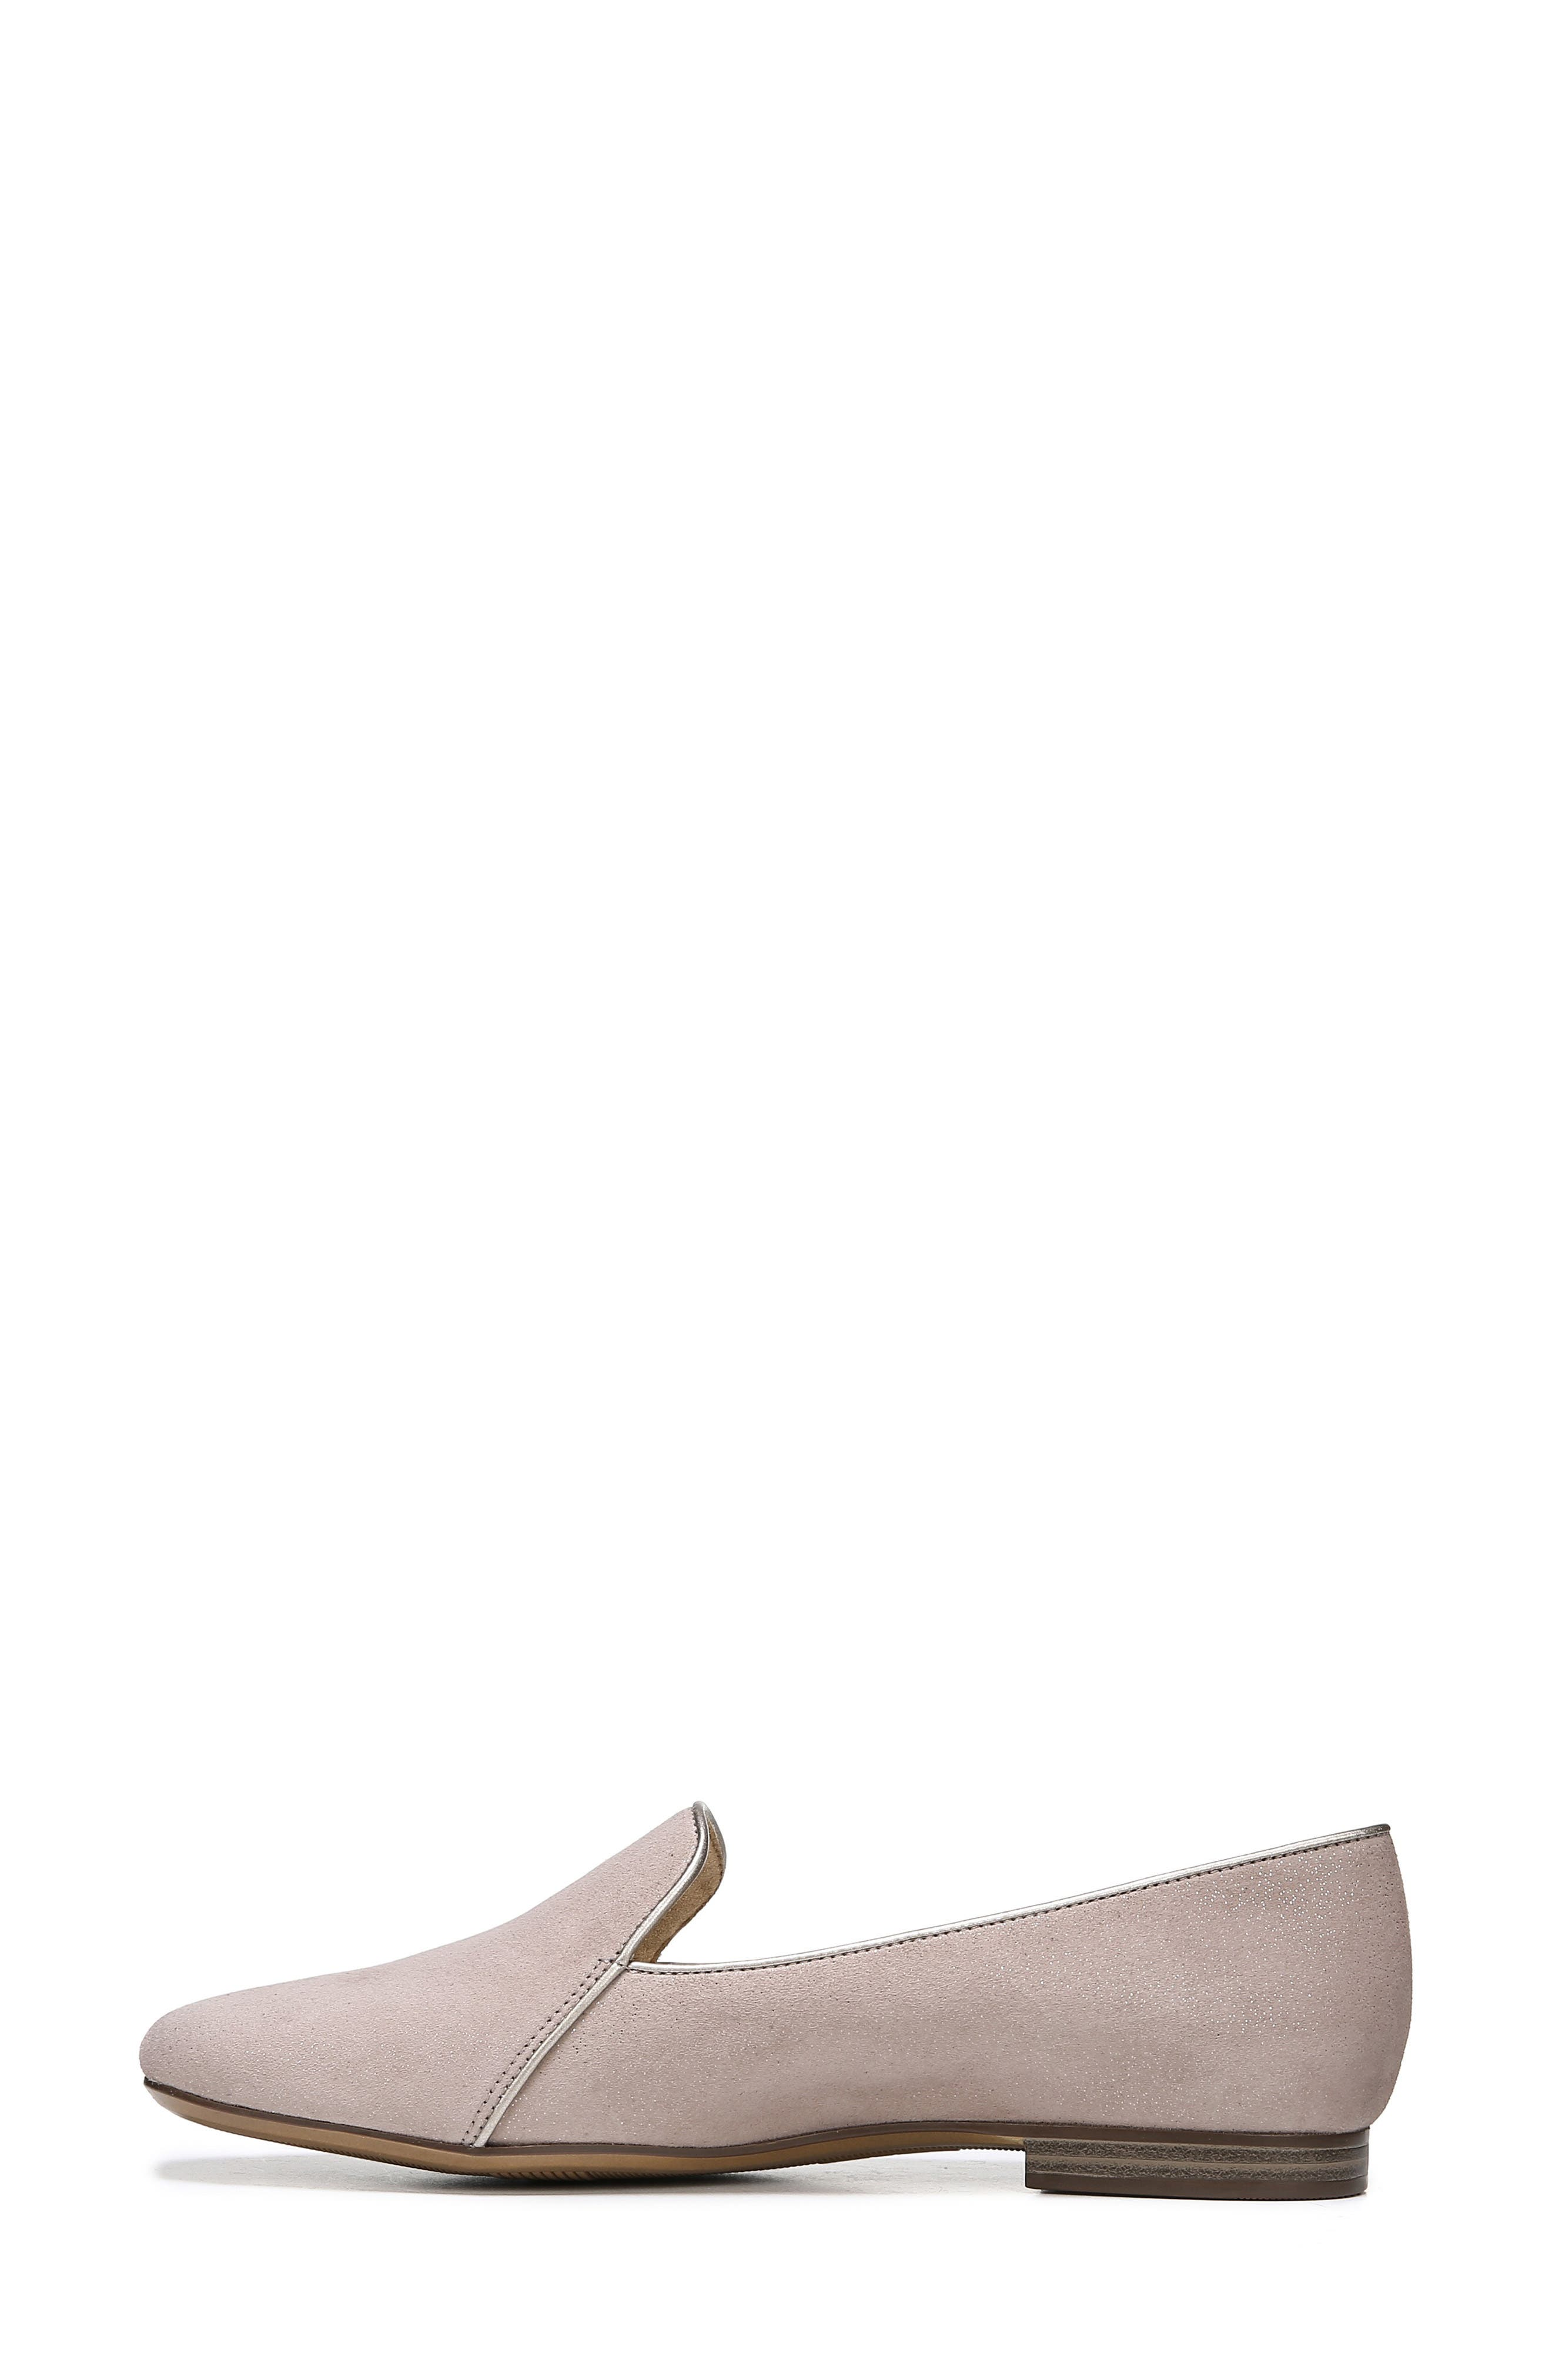 Emiline 2 Loafer,                             Alternate thumbnail 8, color,                             TAUPE GLITTER DUST SUEDE